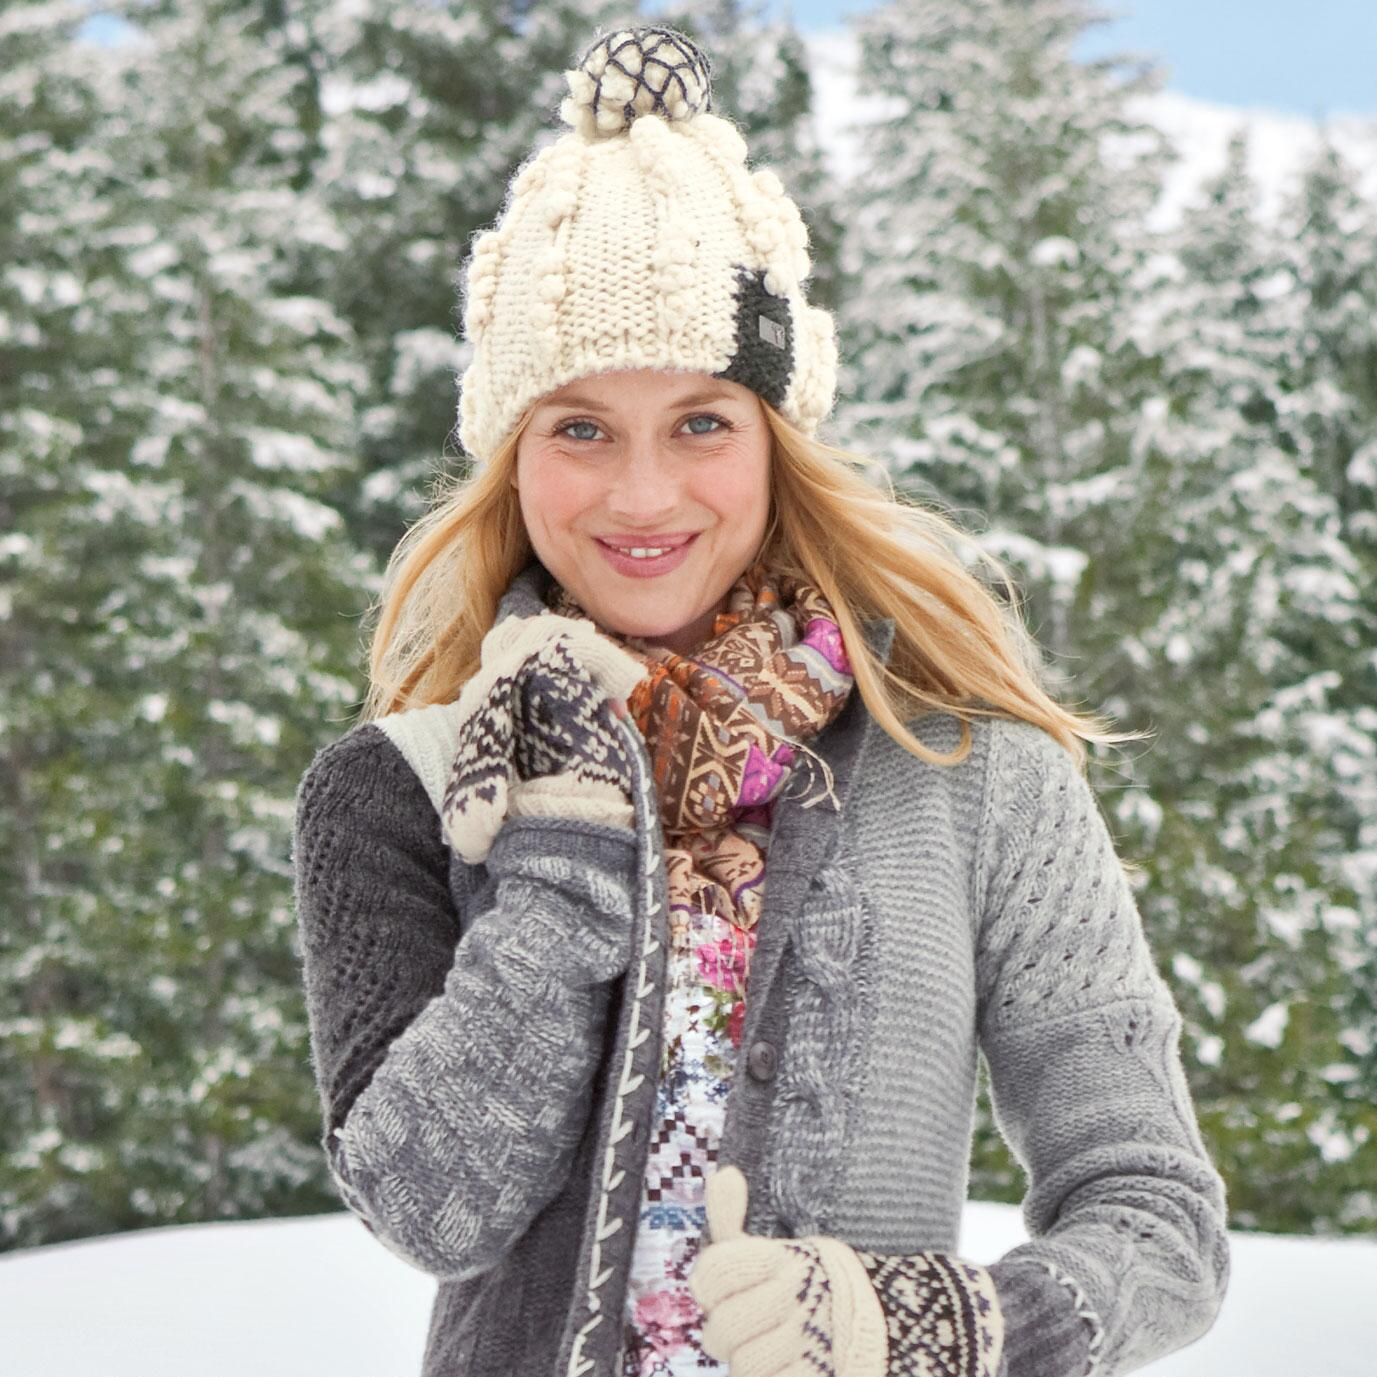 SNOWBALL HAT: View 2